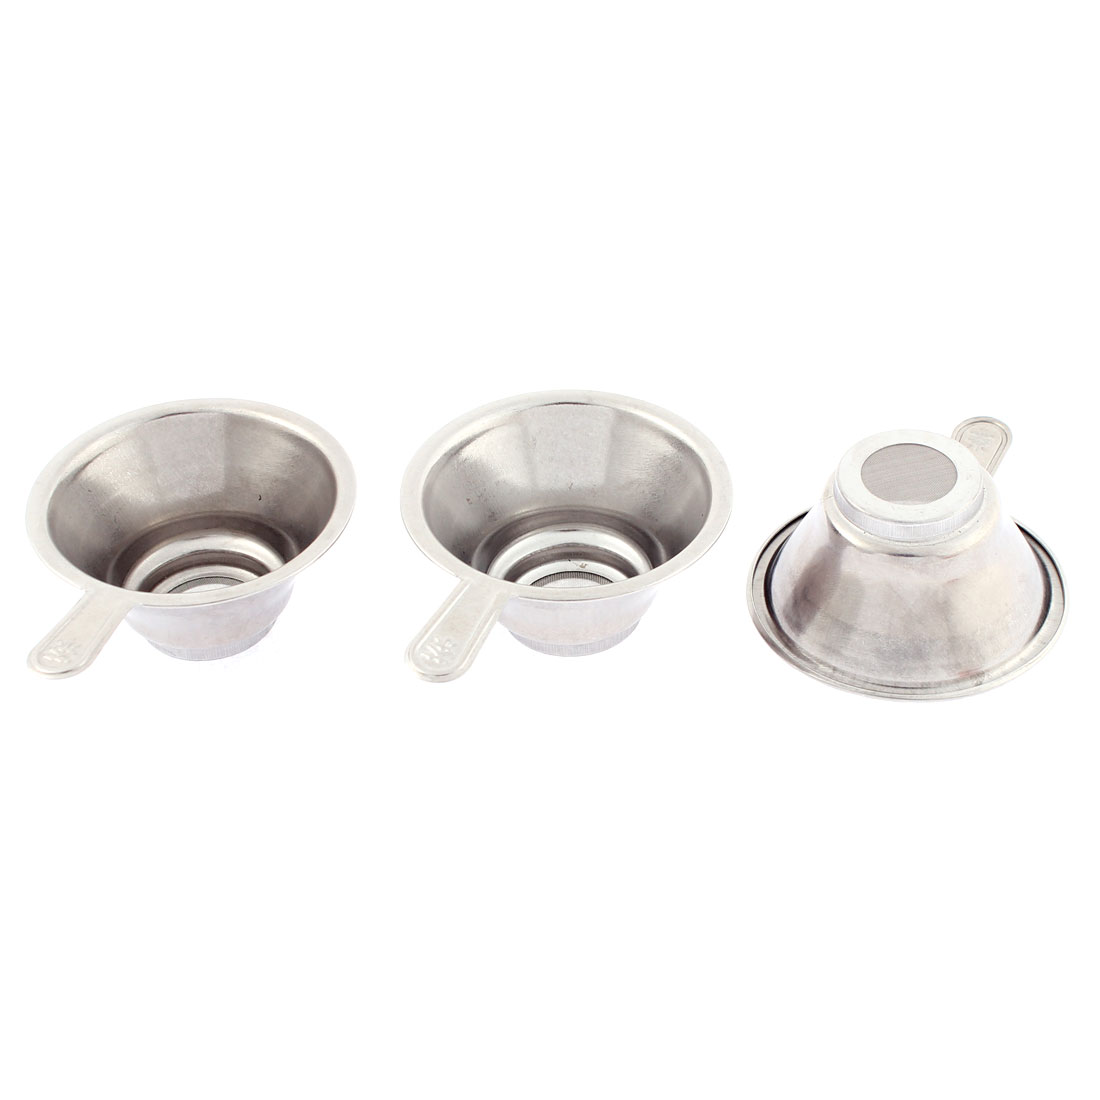 Stainless Steel Mesh Bottom Tea Bowl Strainer Filter 67mm Dia 3 Pcs